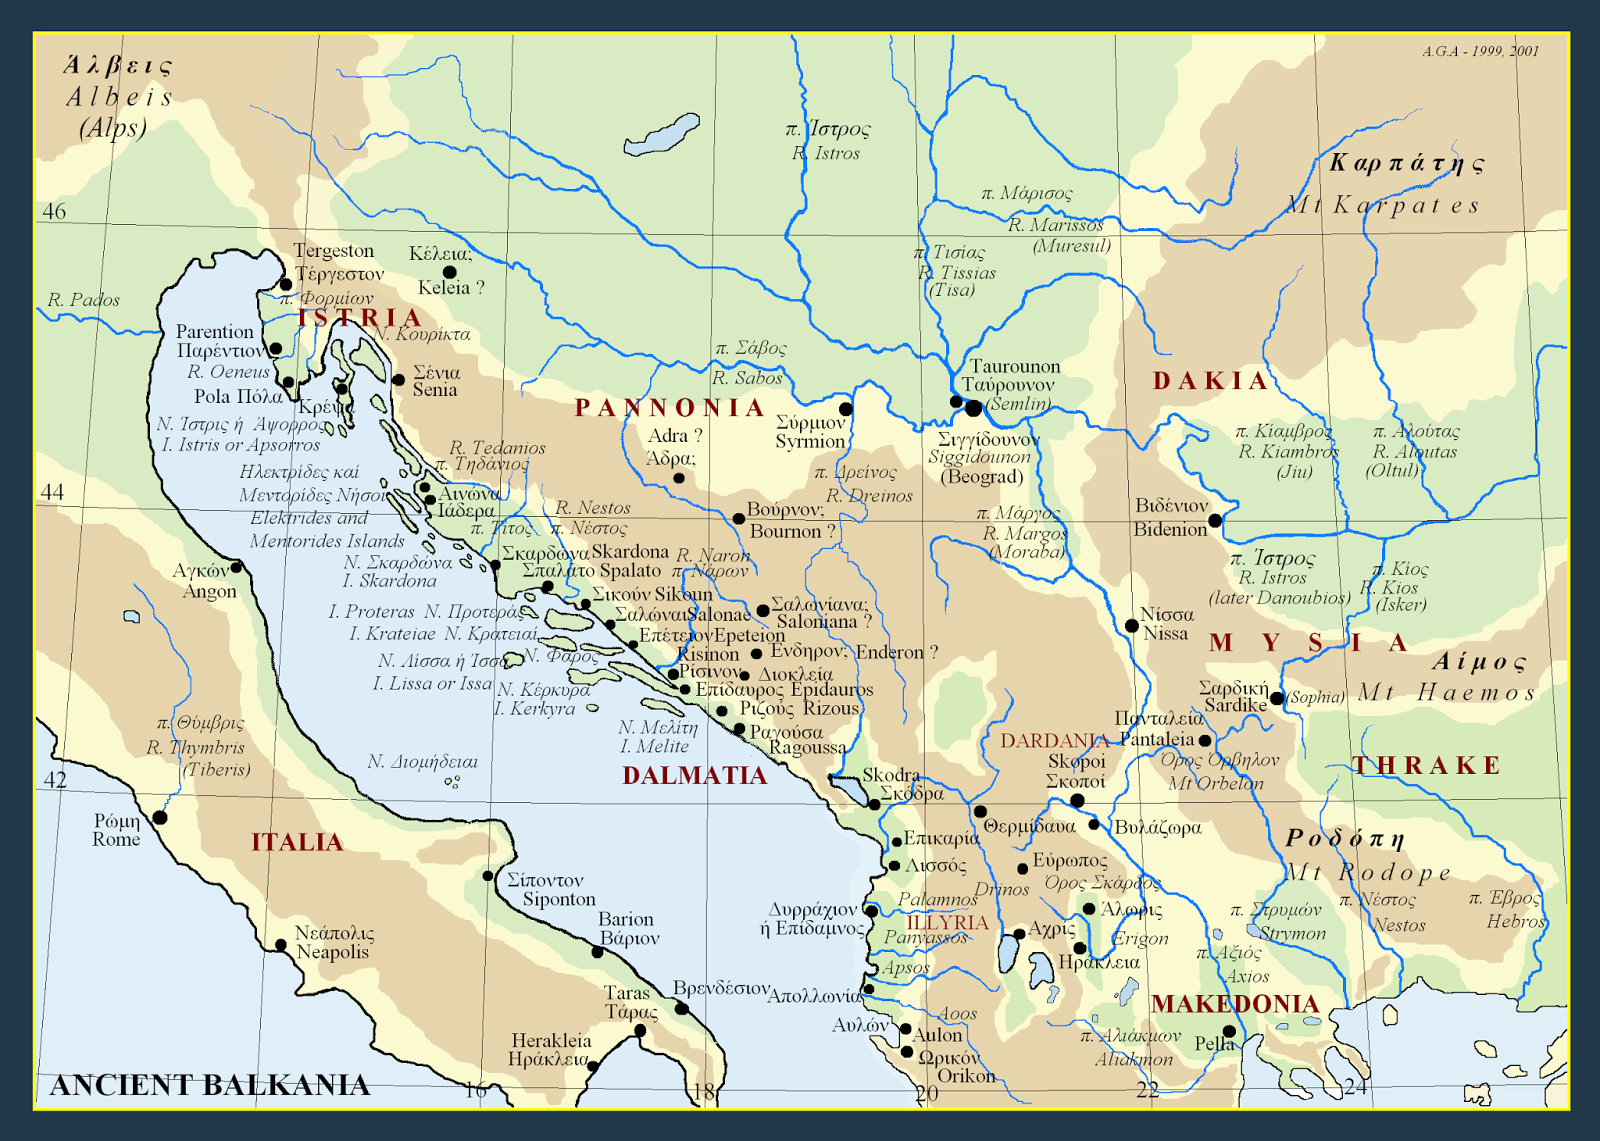 Metron Ariston Maps of ancient Balkans